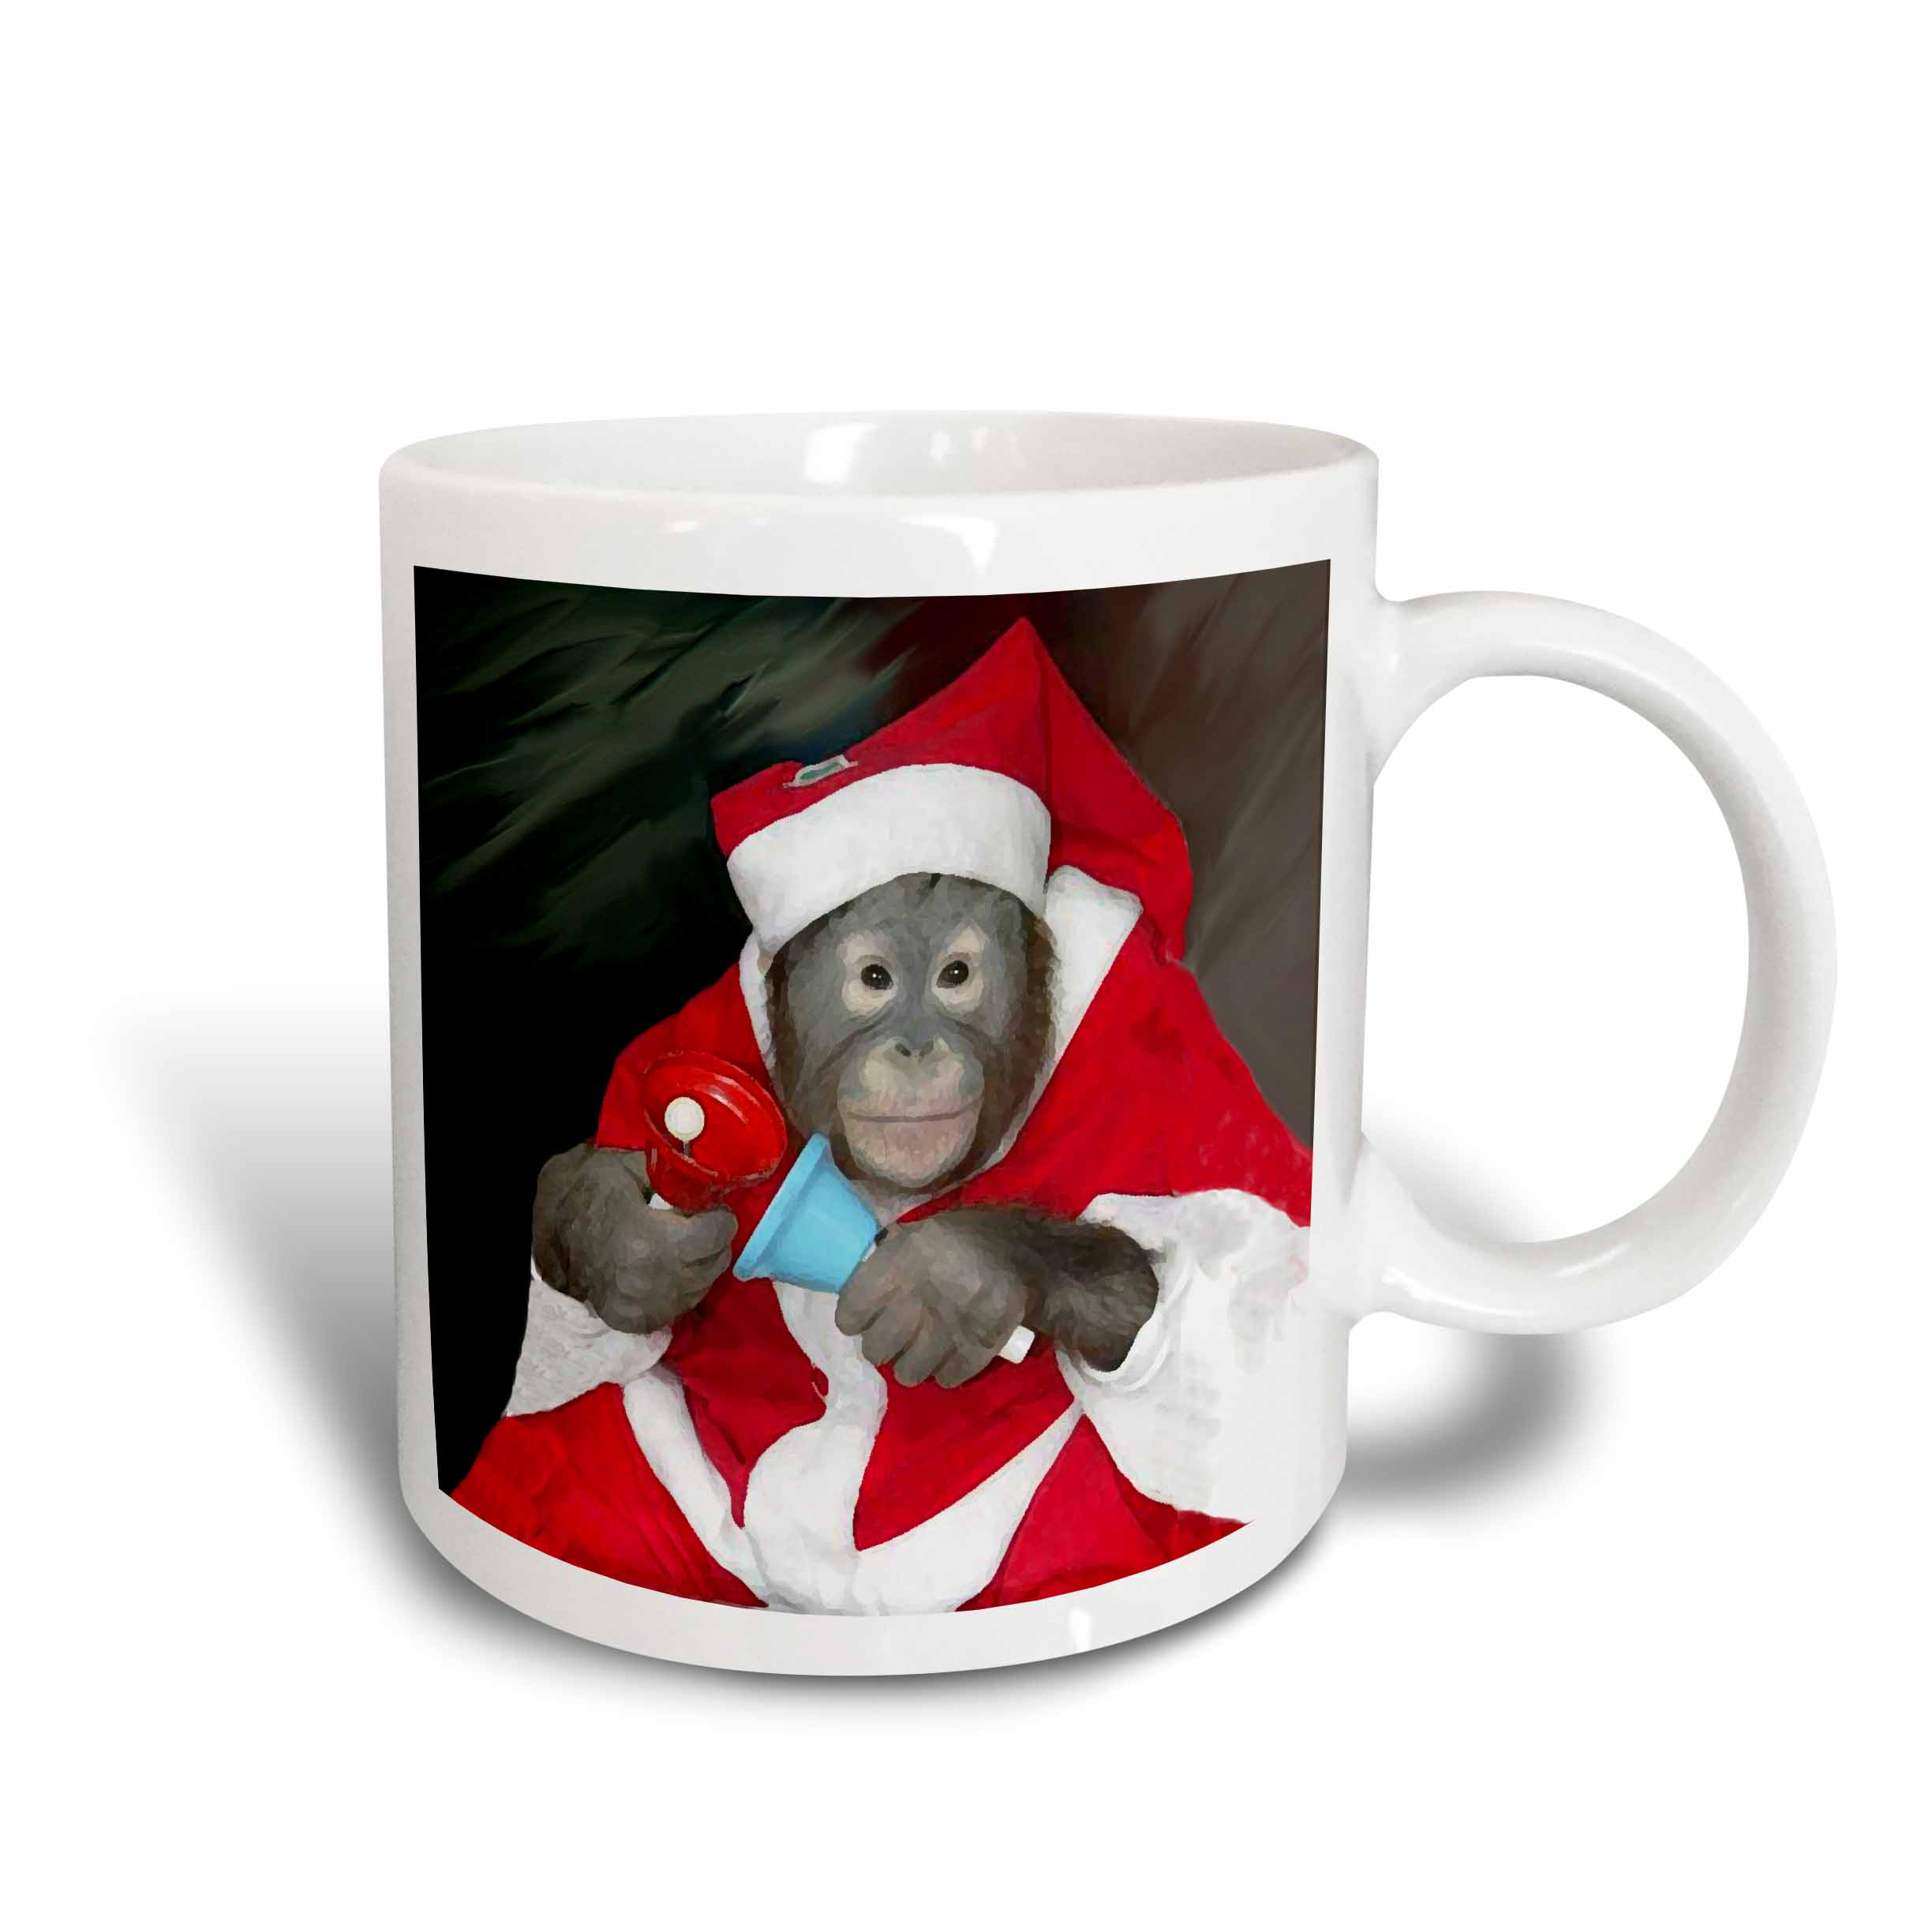 3dRose Christmas Monkey, Ceramic Mug, 11-ounce